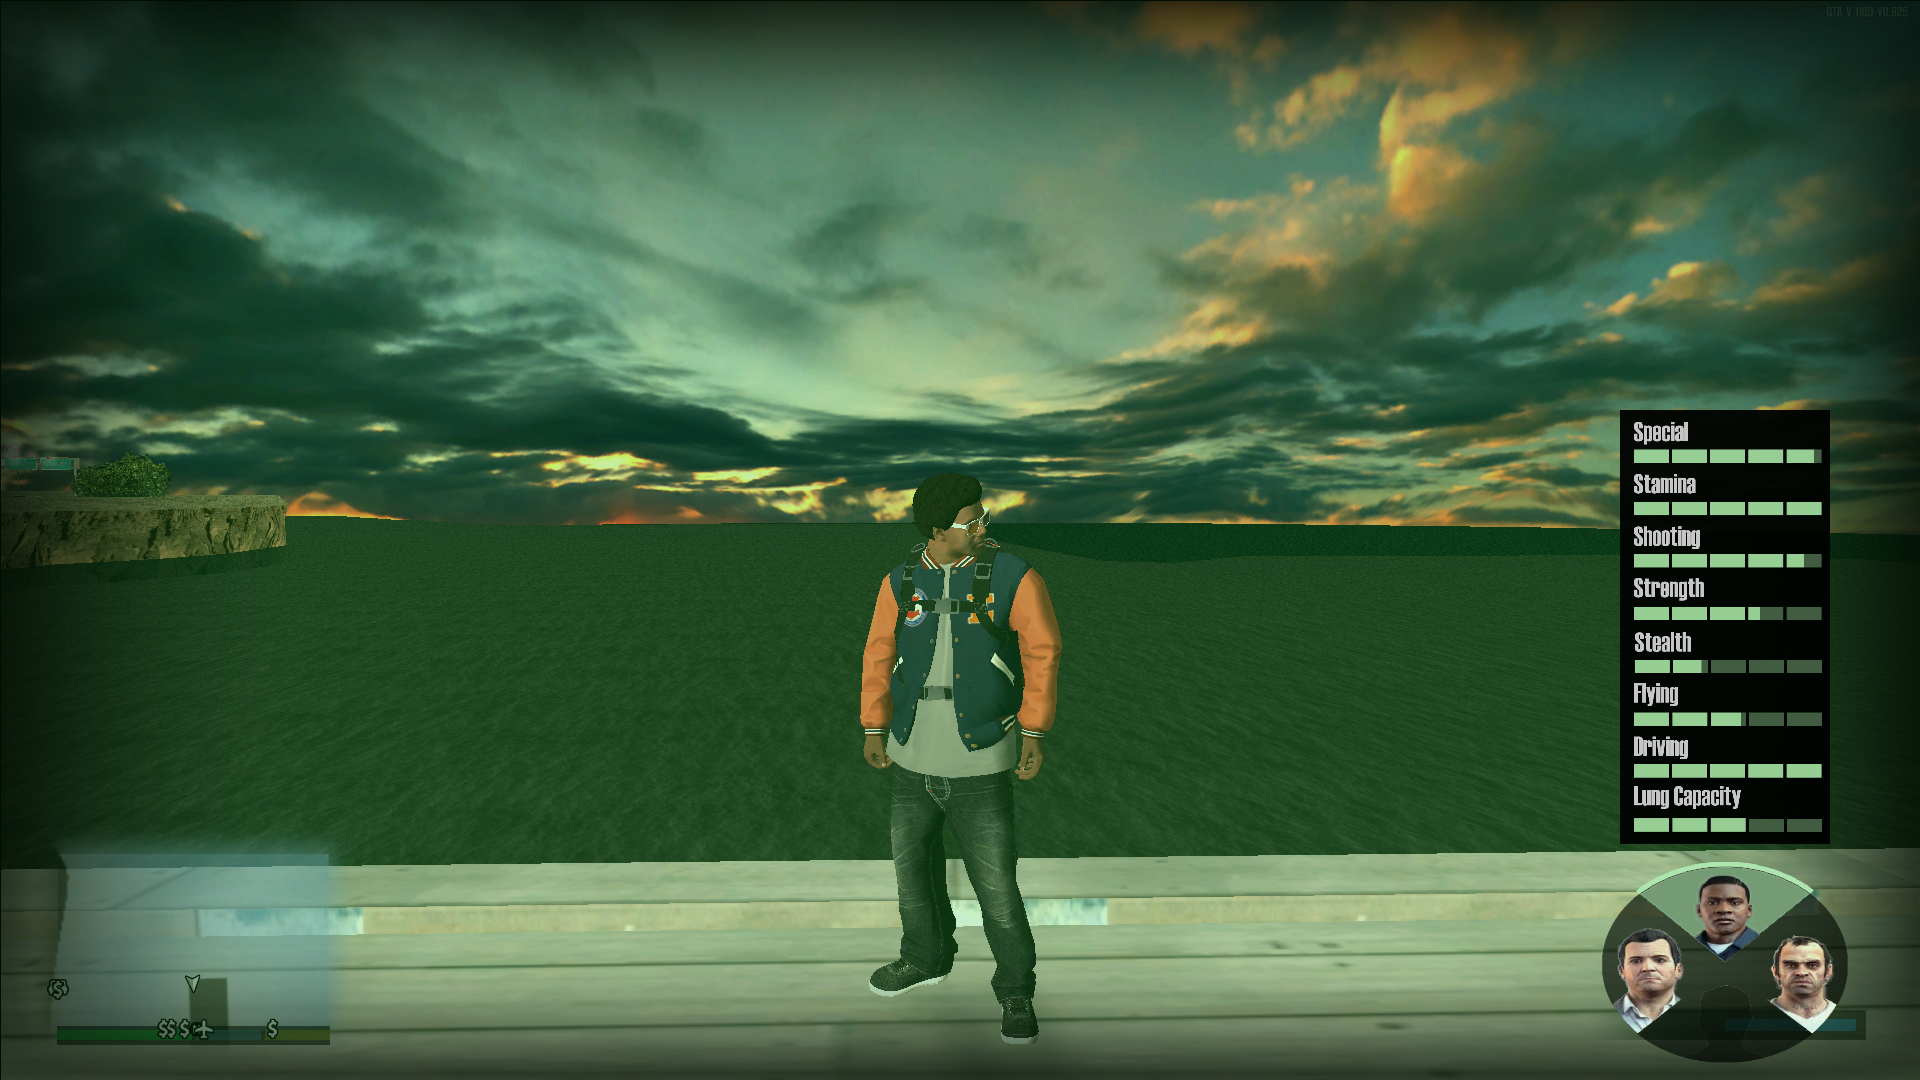 New Character Switch image - GTA V San Andreas mod for Grand Theft